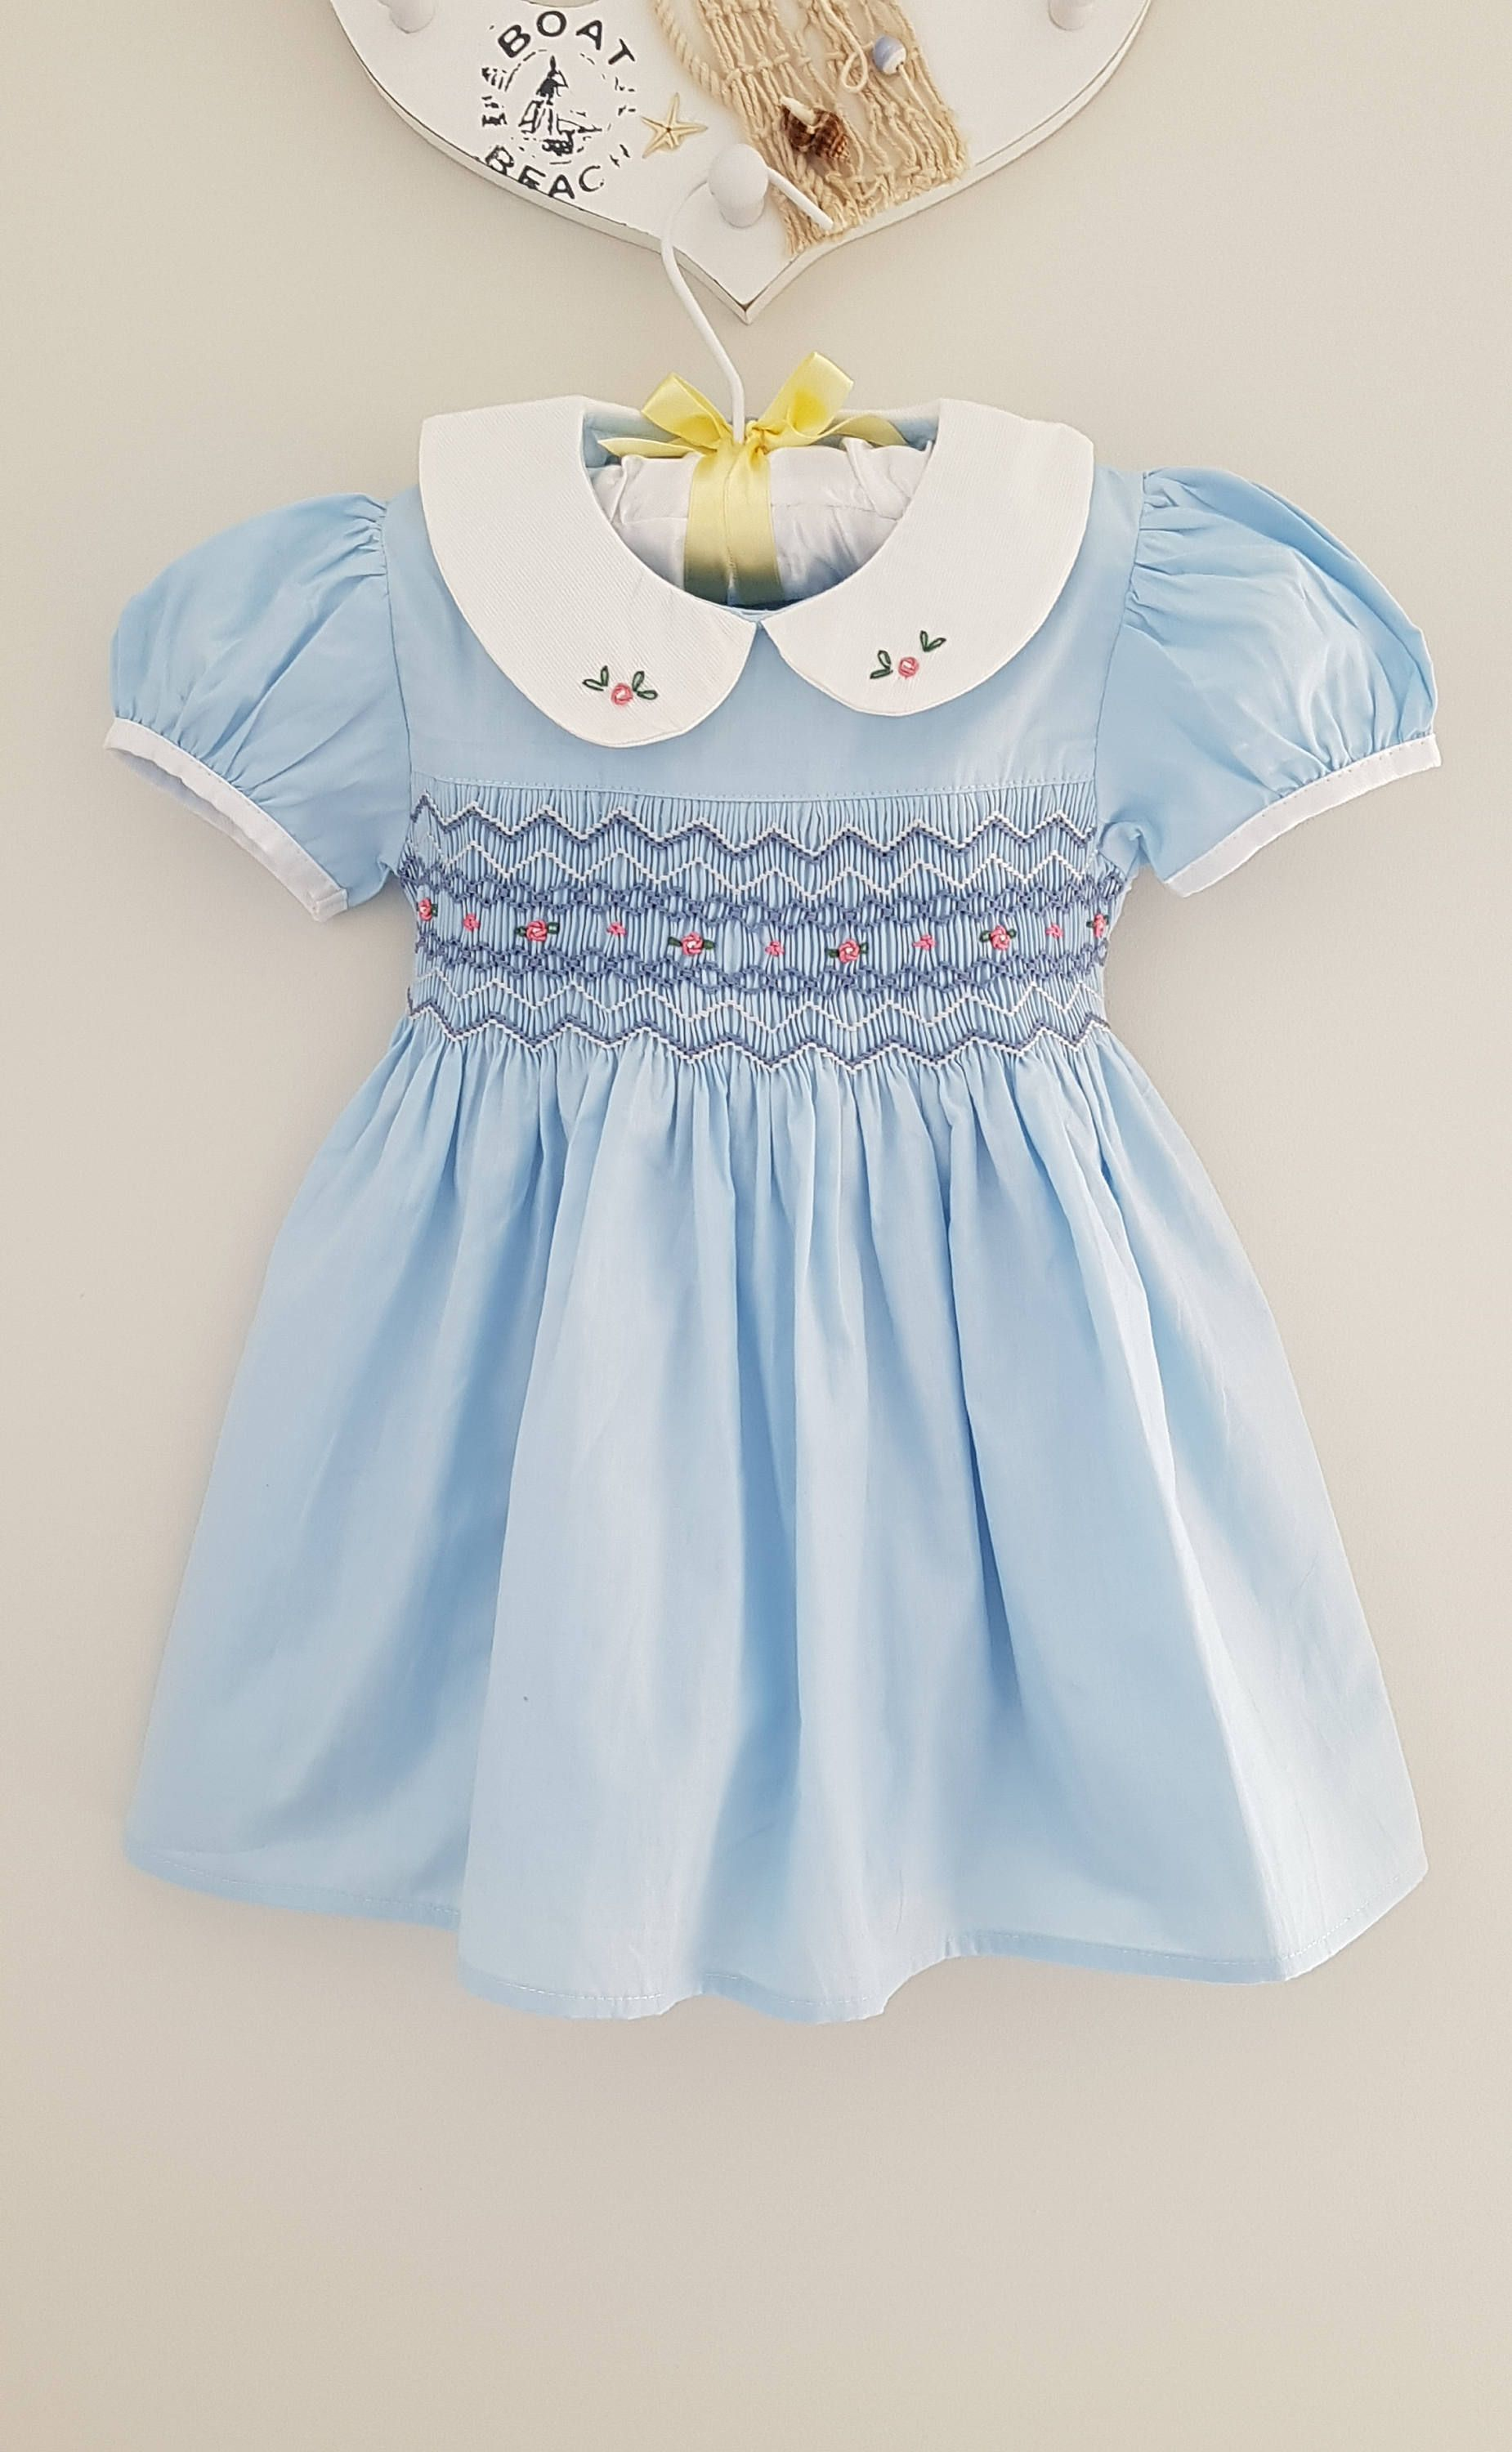 89ecf3fc0a28 Beautiful light blue hand smocked and embroidered baby dress - size ...